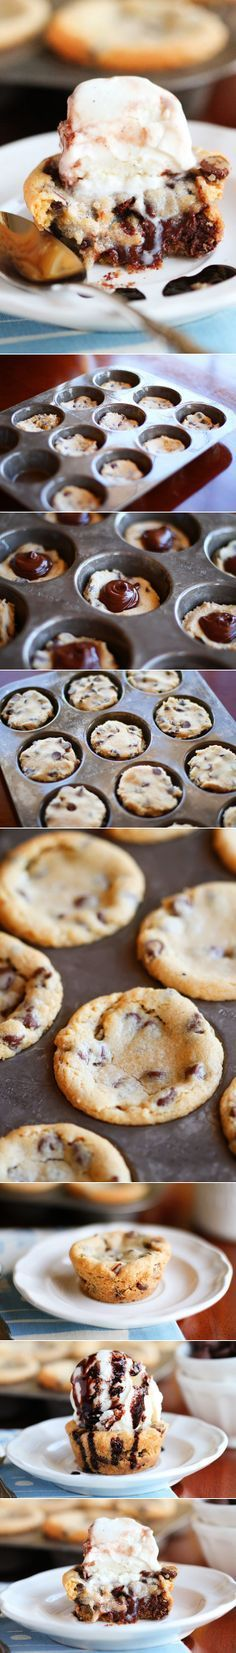 Chocolate Chip Lava Cookies!